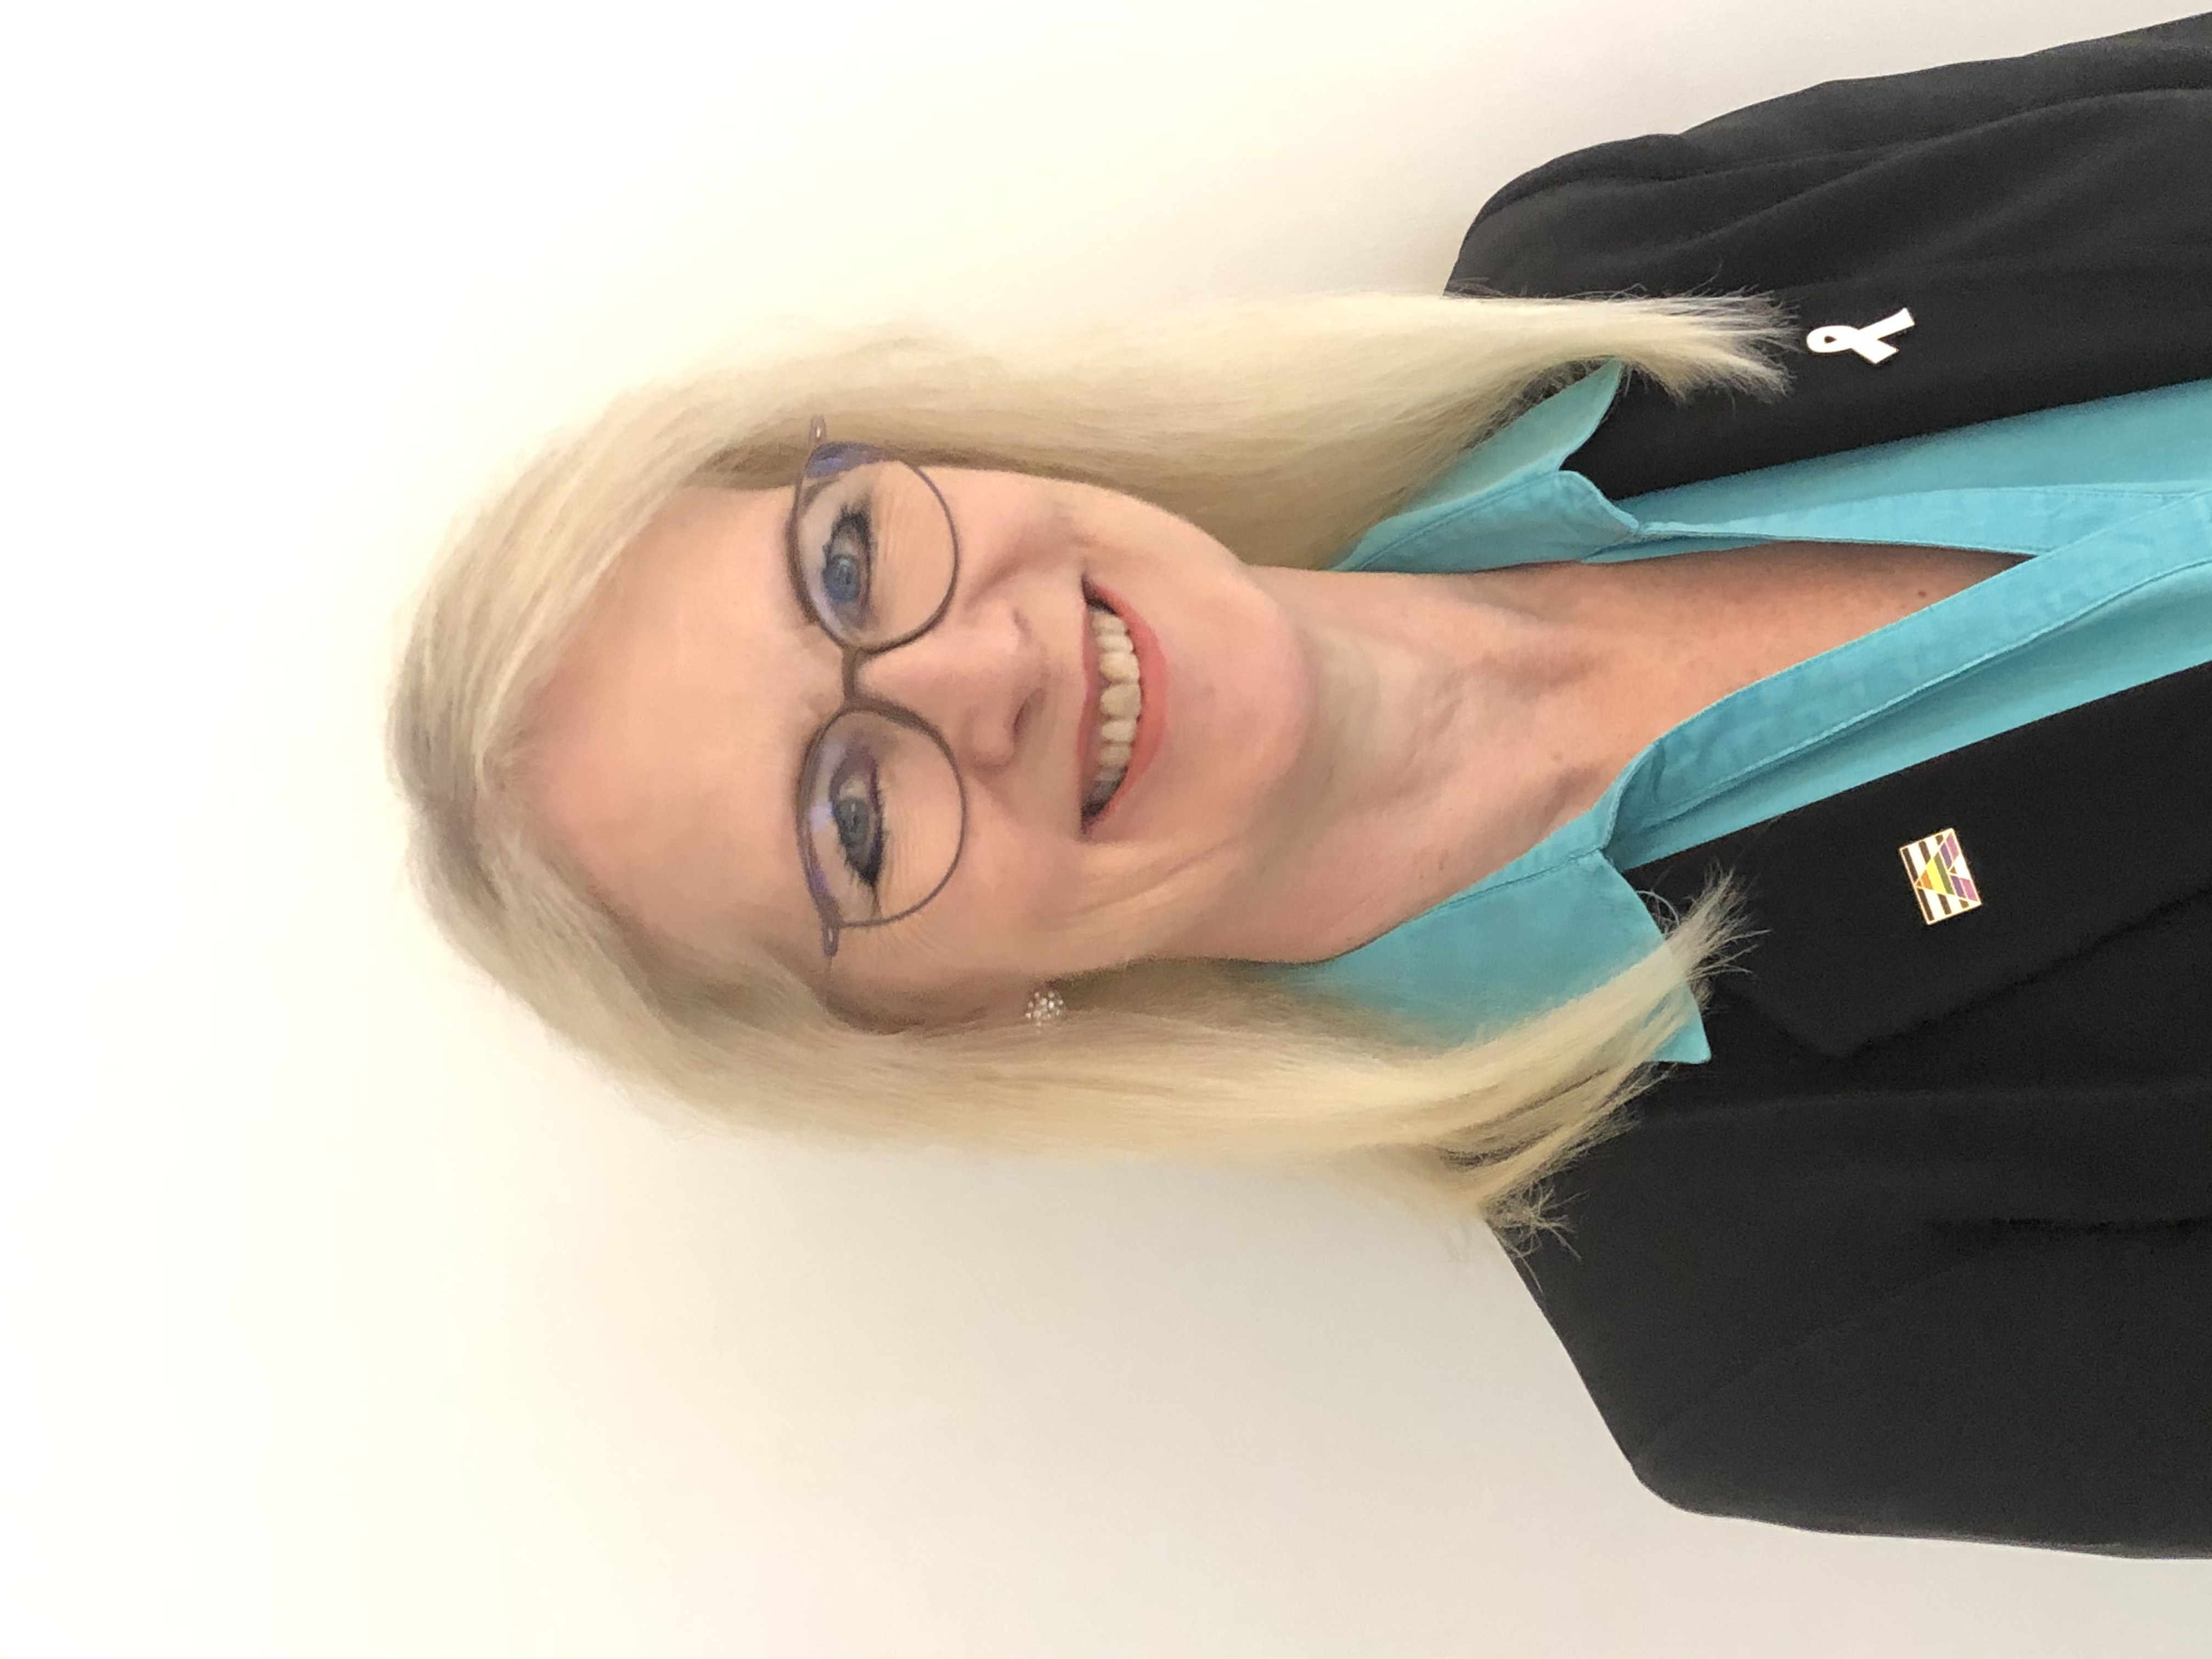 Cllr Kay Wesley, Congleton Town Council